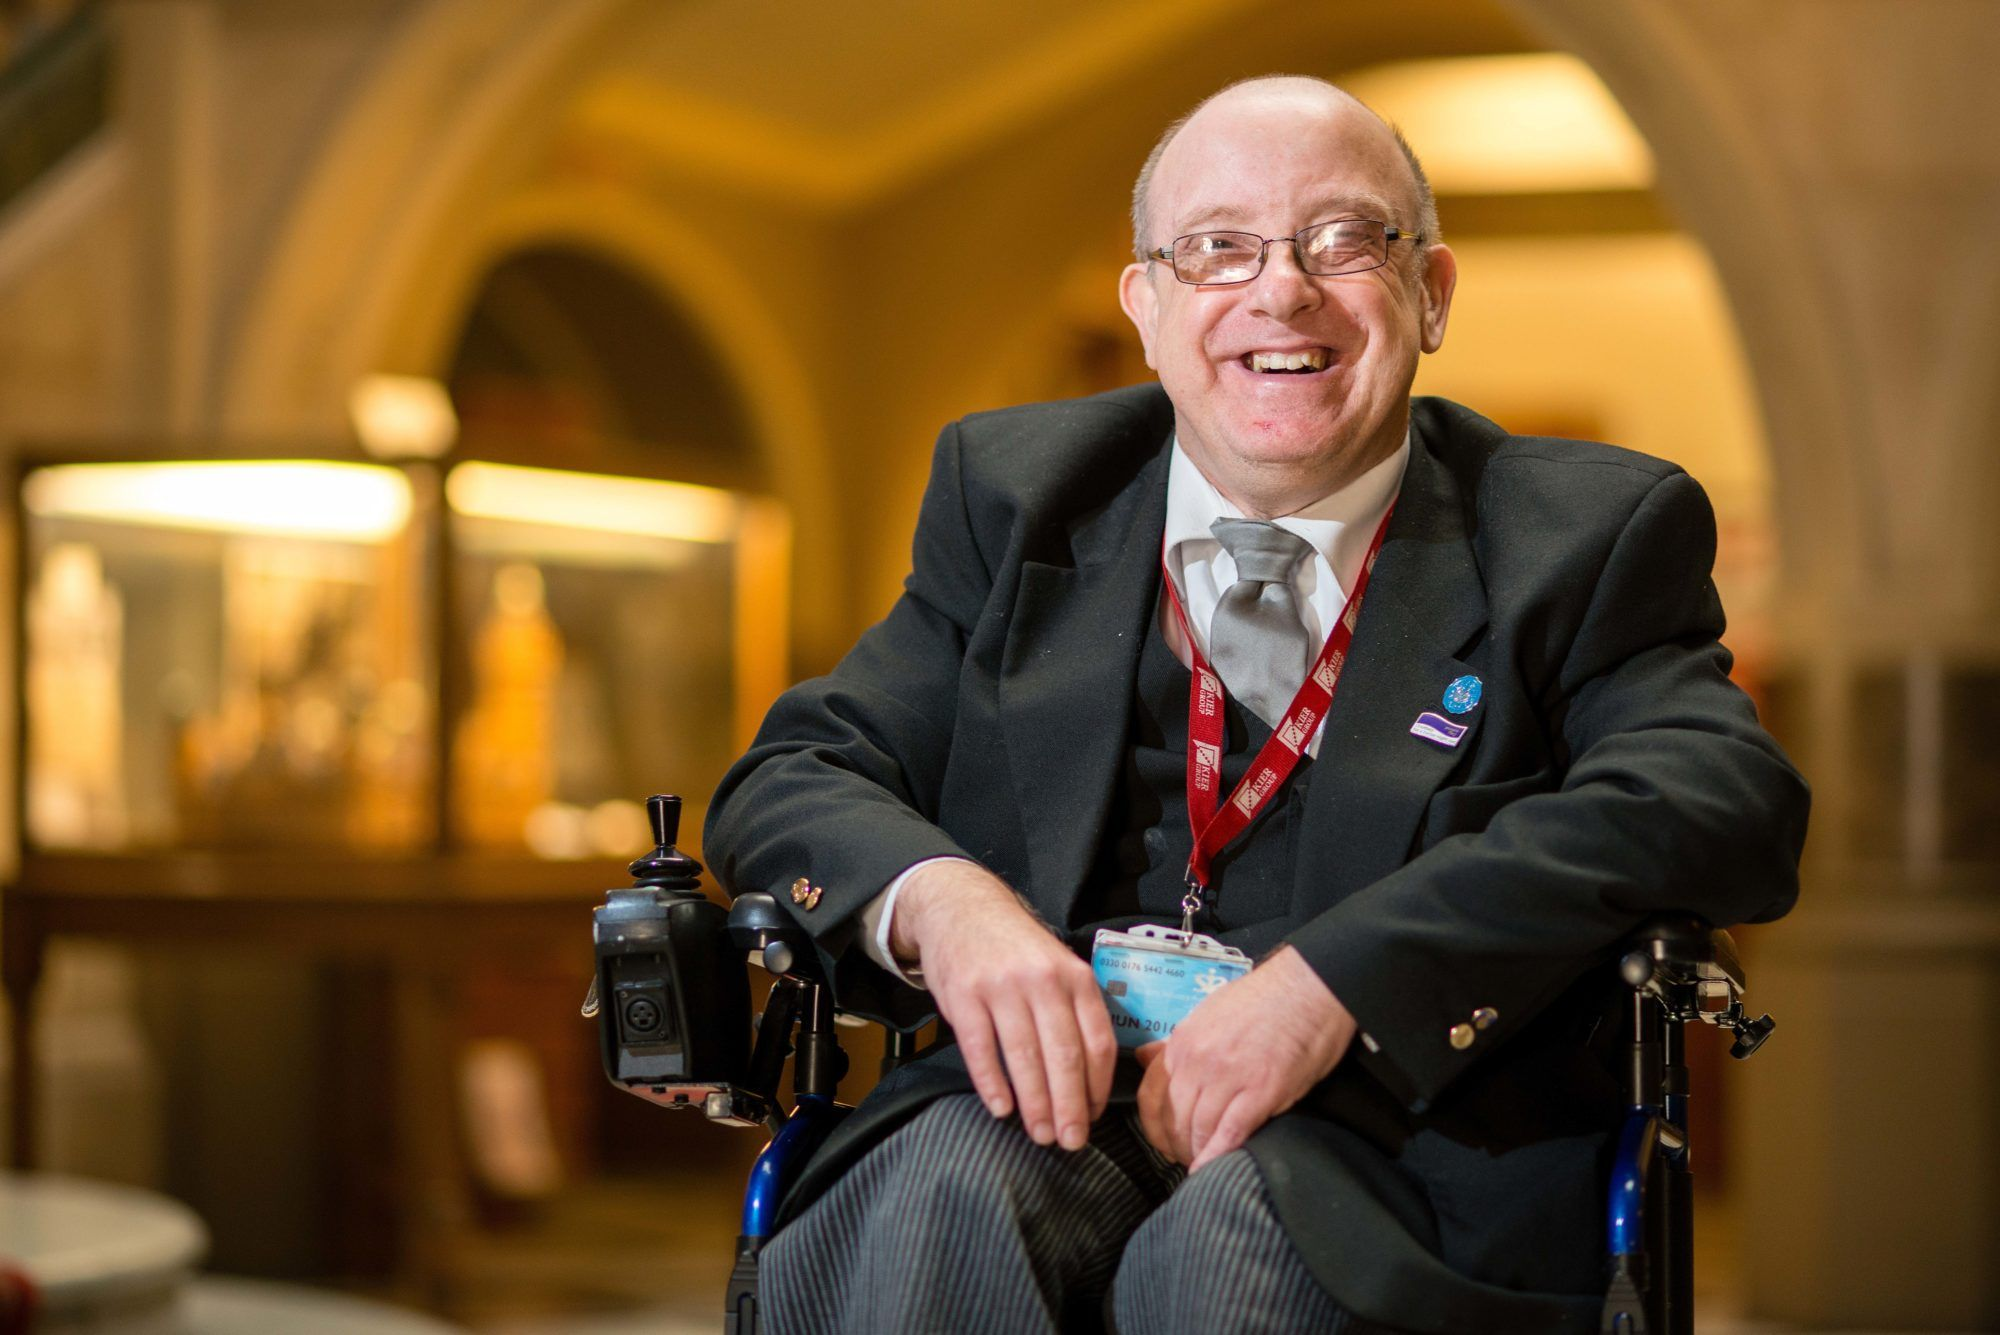 A man wearing glasses wearing a suit and smiling in a wheelchair